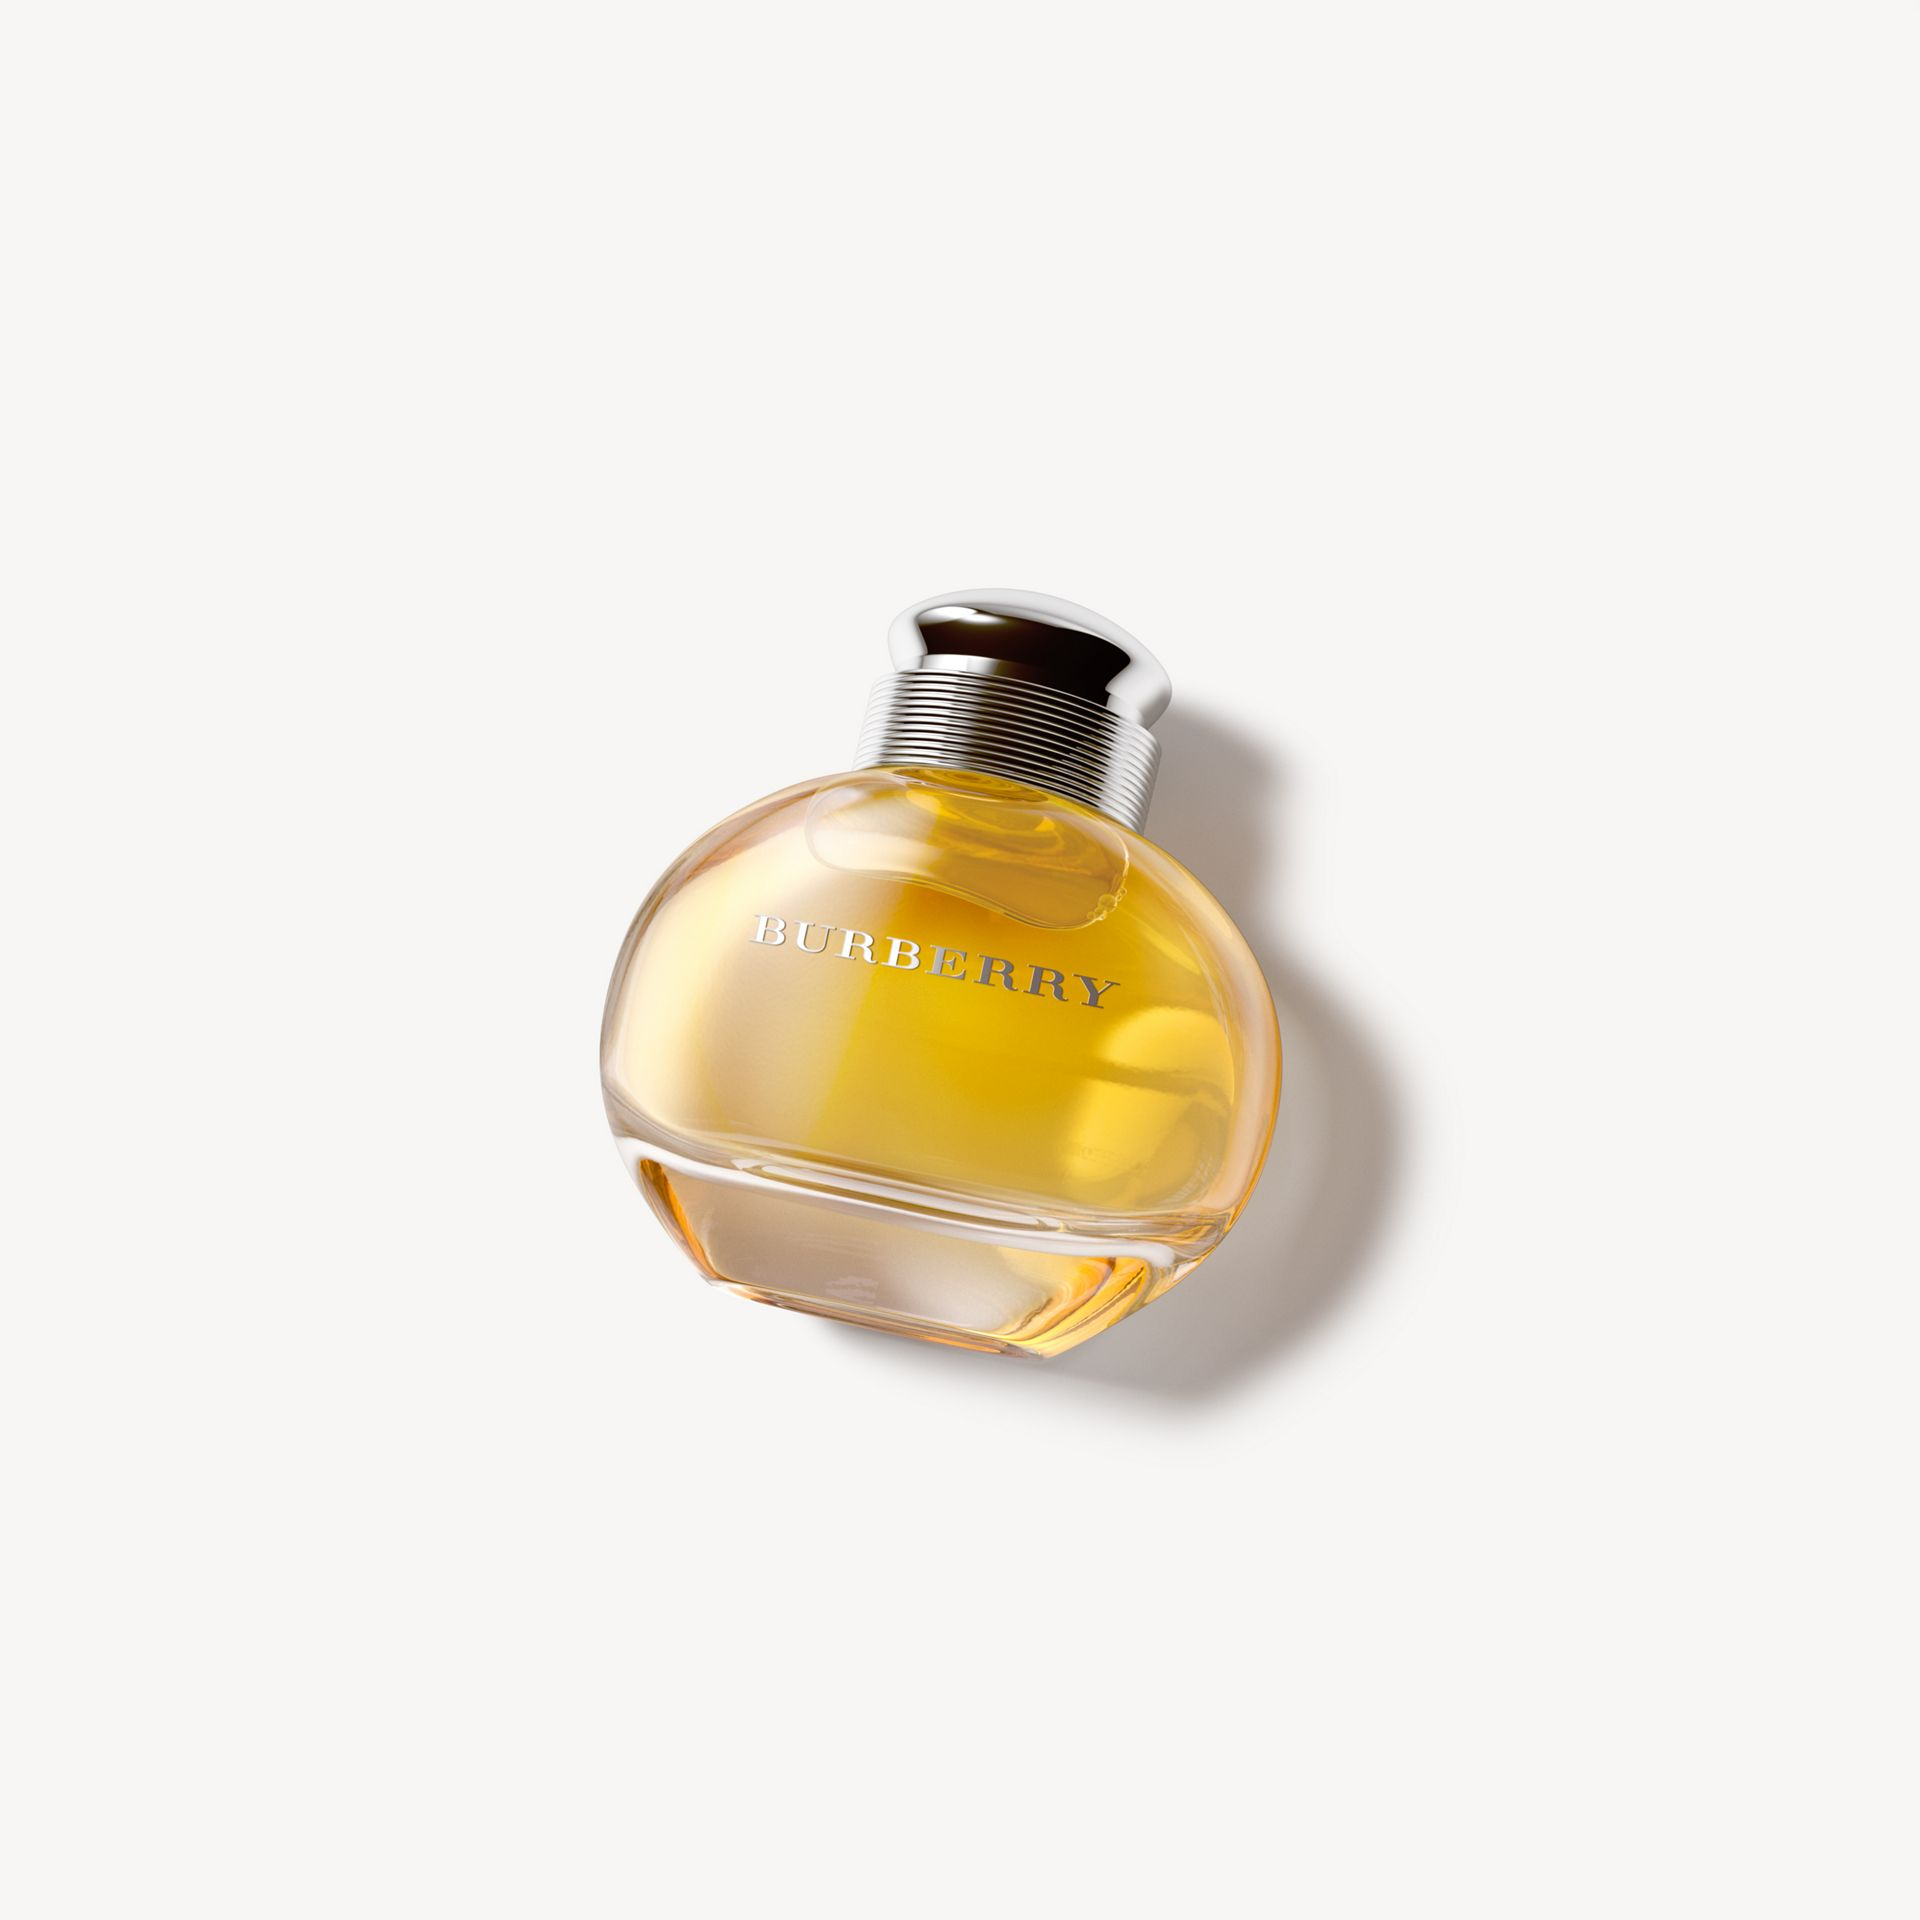 Burberry For Women Eau de Parfum 50ml - Women | Burberry Singapore - gallery image 0